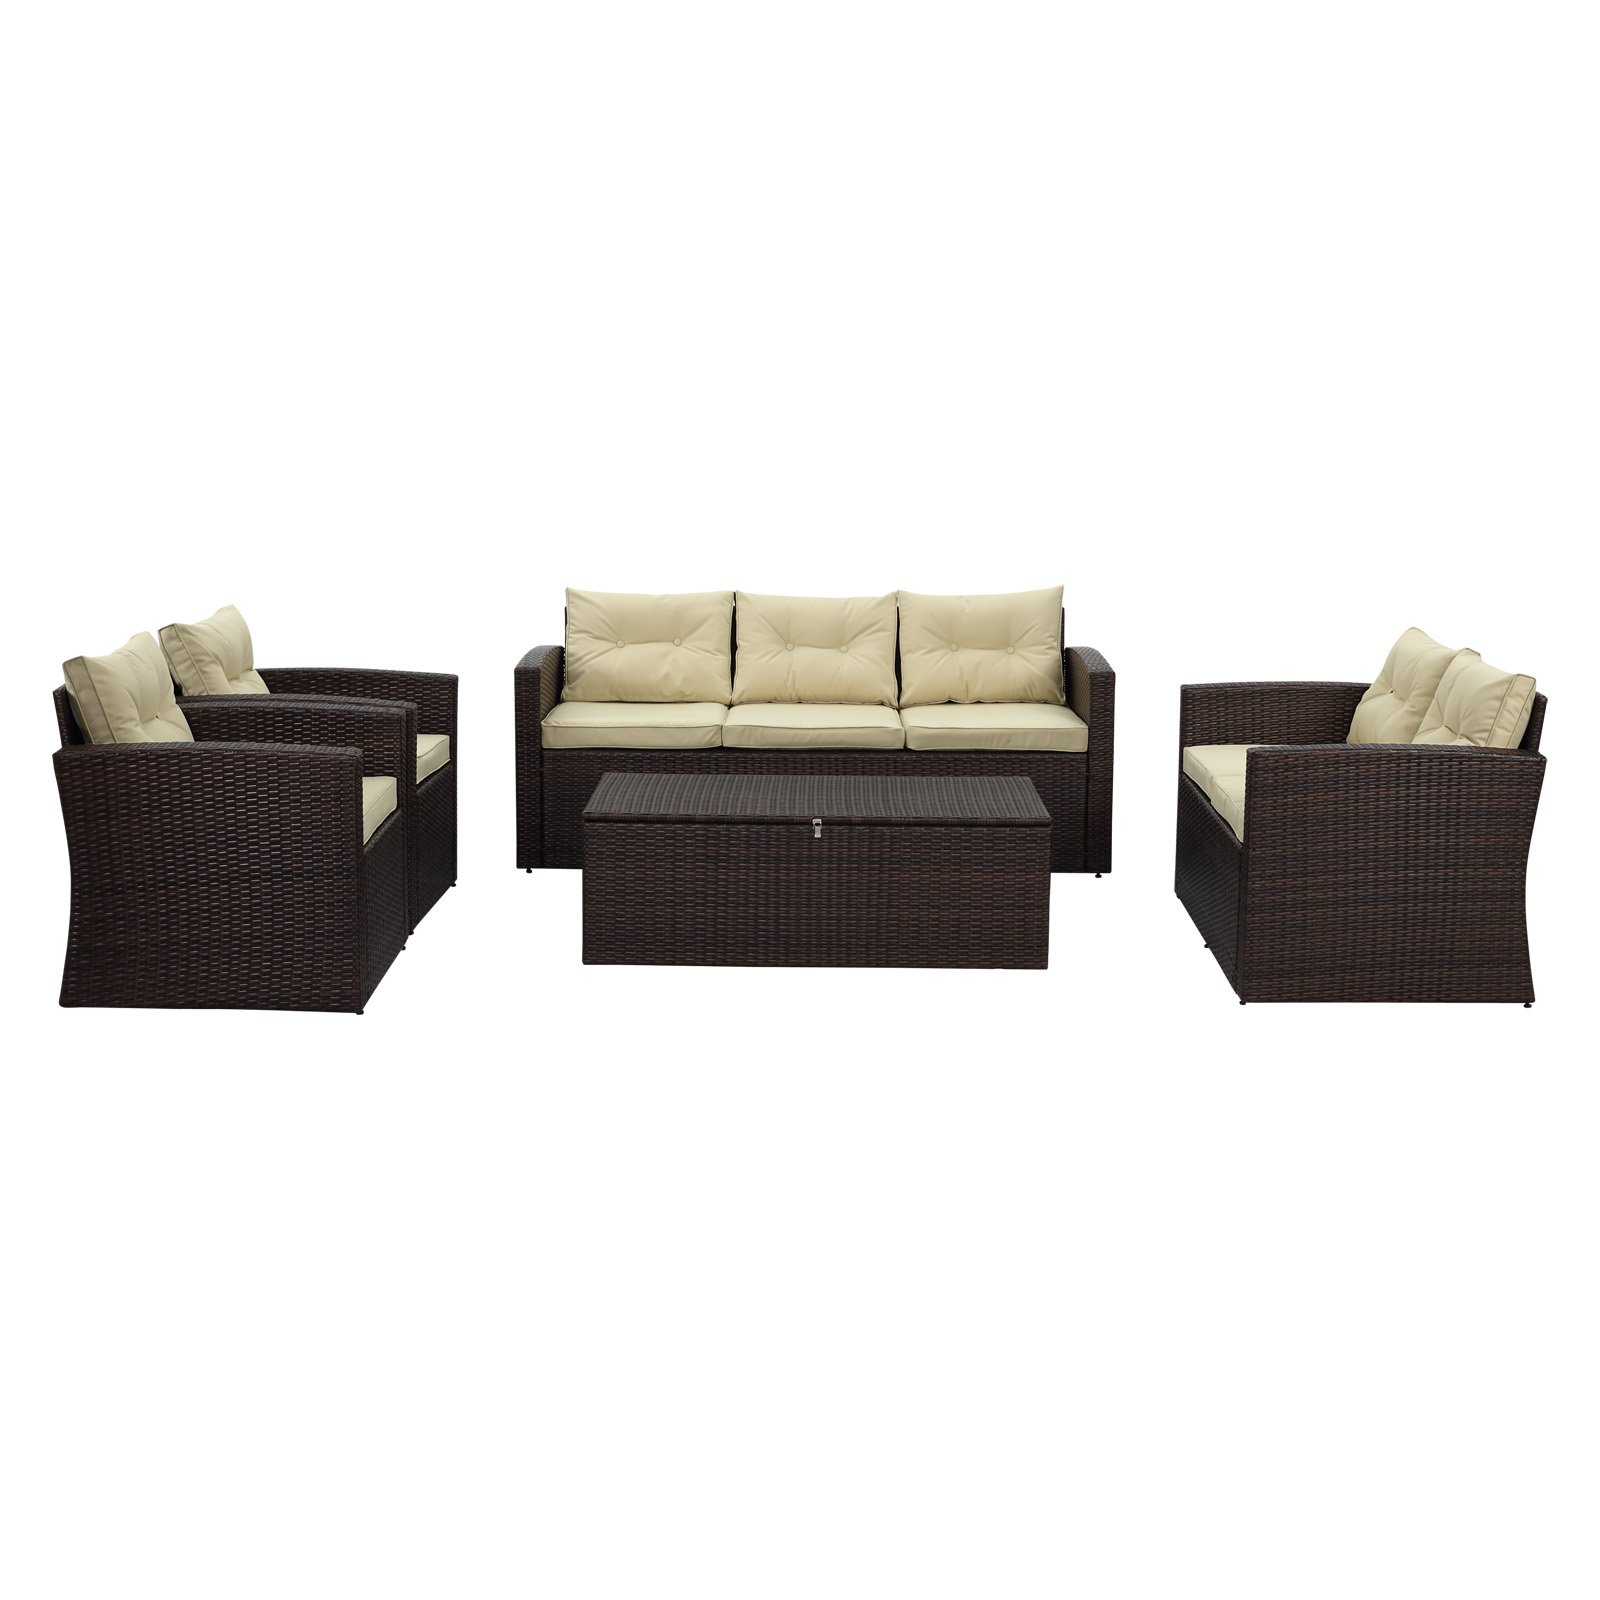 Thy-Hom Rio Wicker 7 Seat All-Weather 5 Piece Patio Conversation Set with Storage by Wicker Furniture